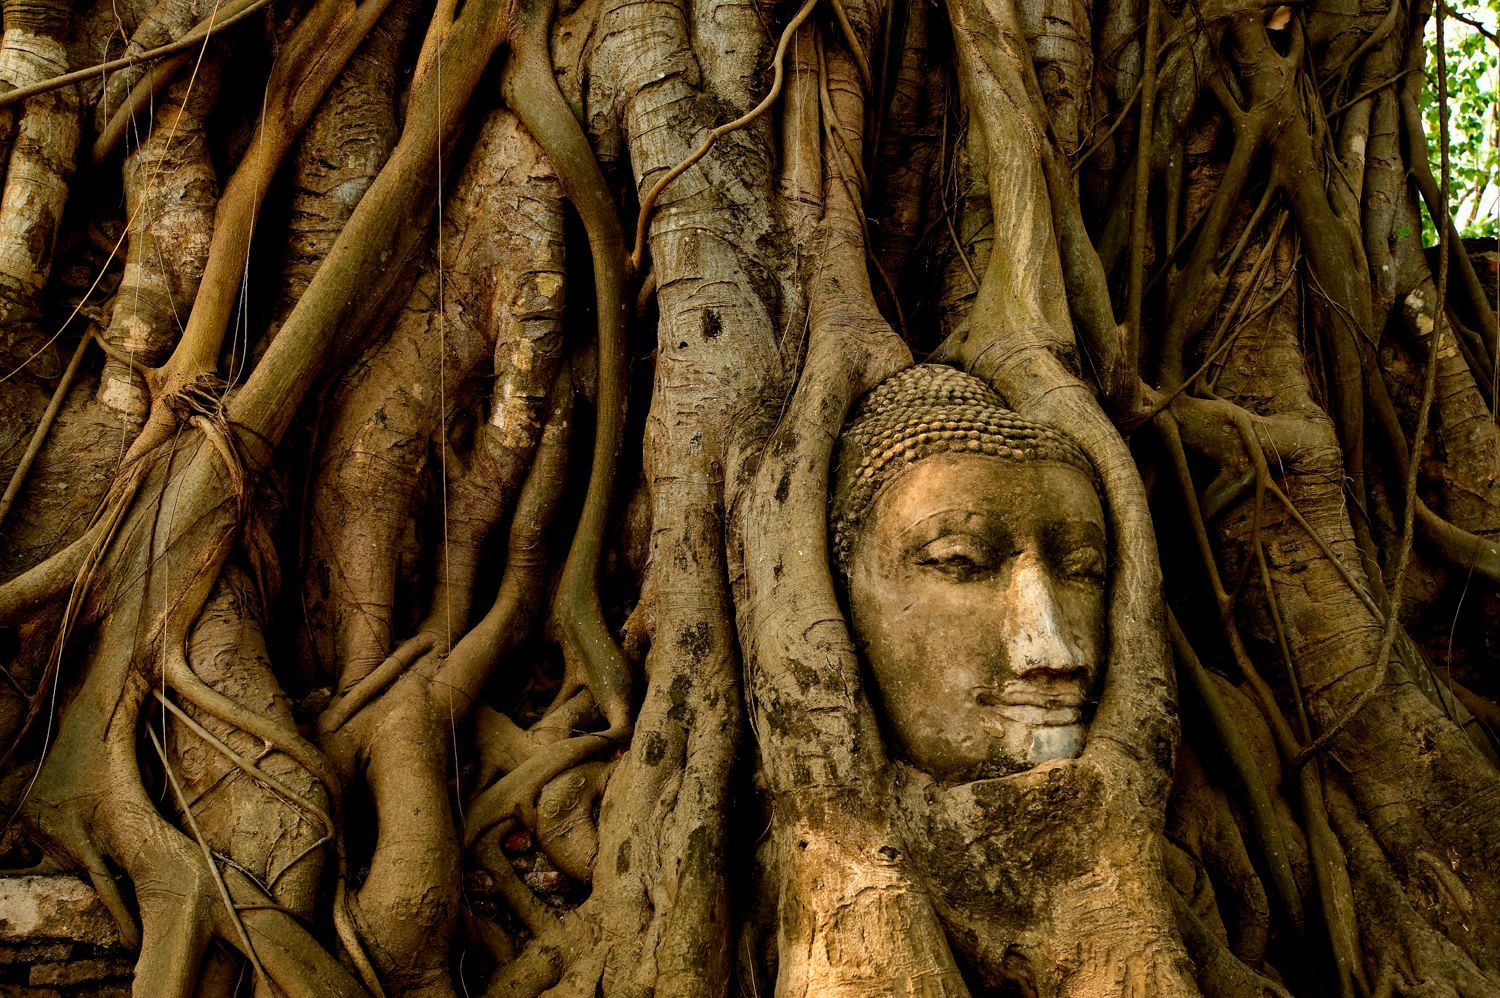 Buddha Head in Tree Roots, Thailand